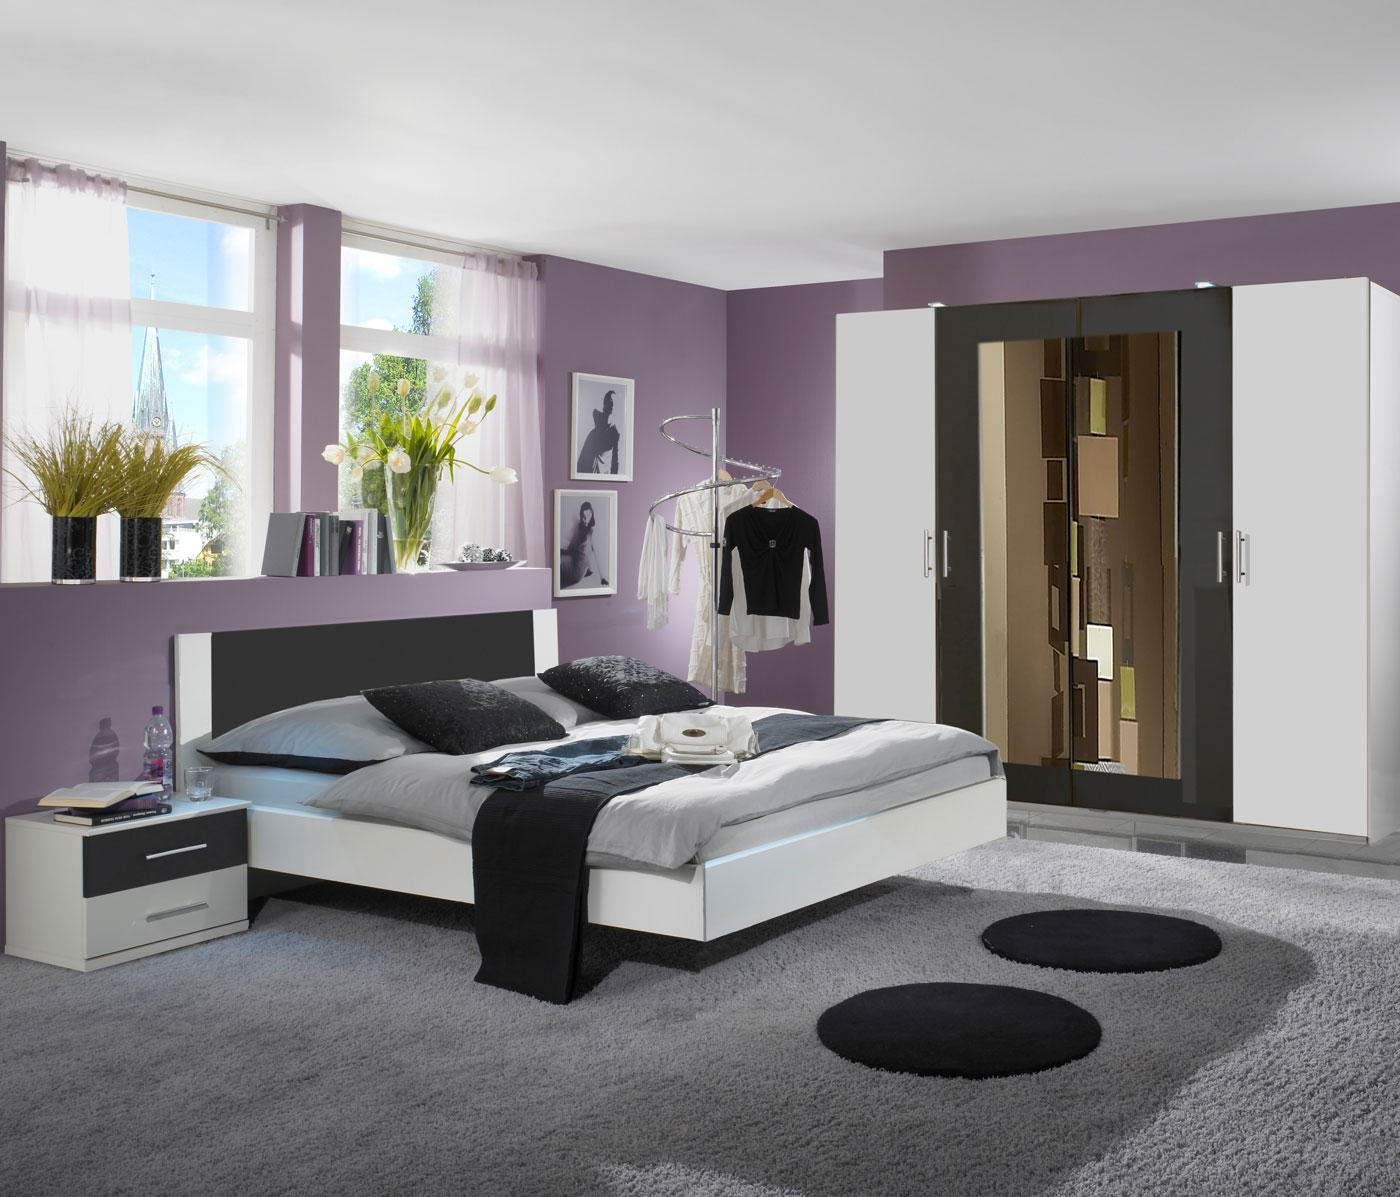 schlafzimmer komplettset kleiderschrank bett 180x200. Black Bedroom Furniture Sets. Home Design Ideas